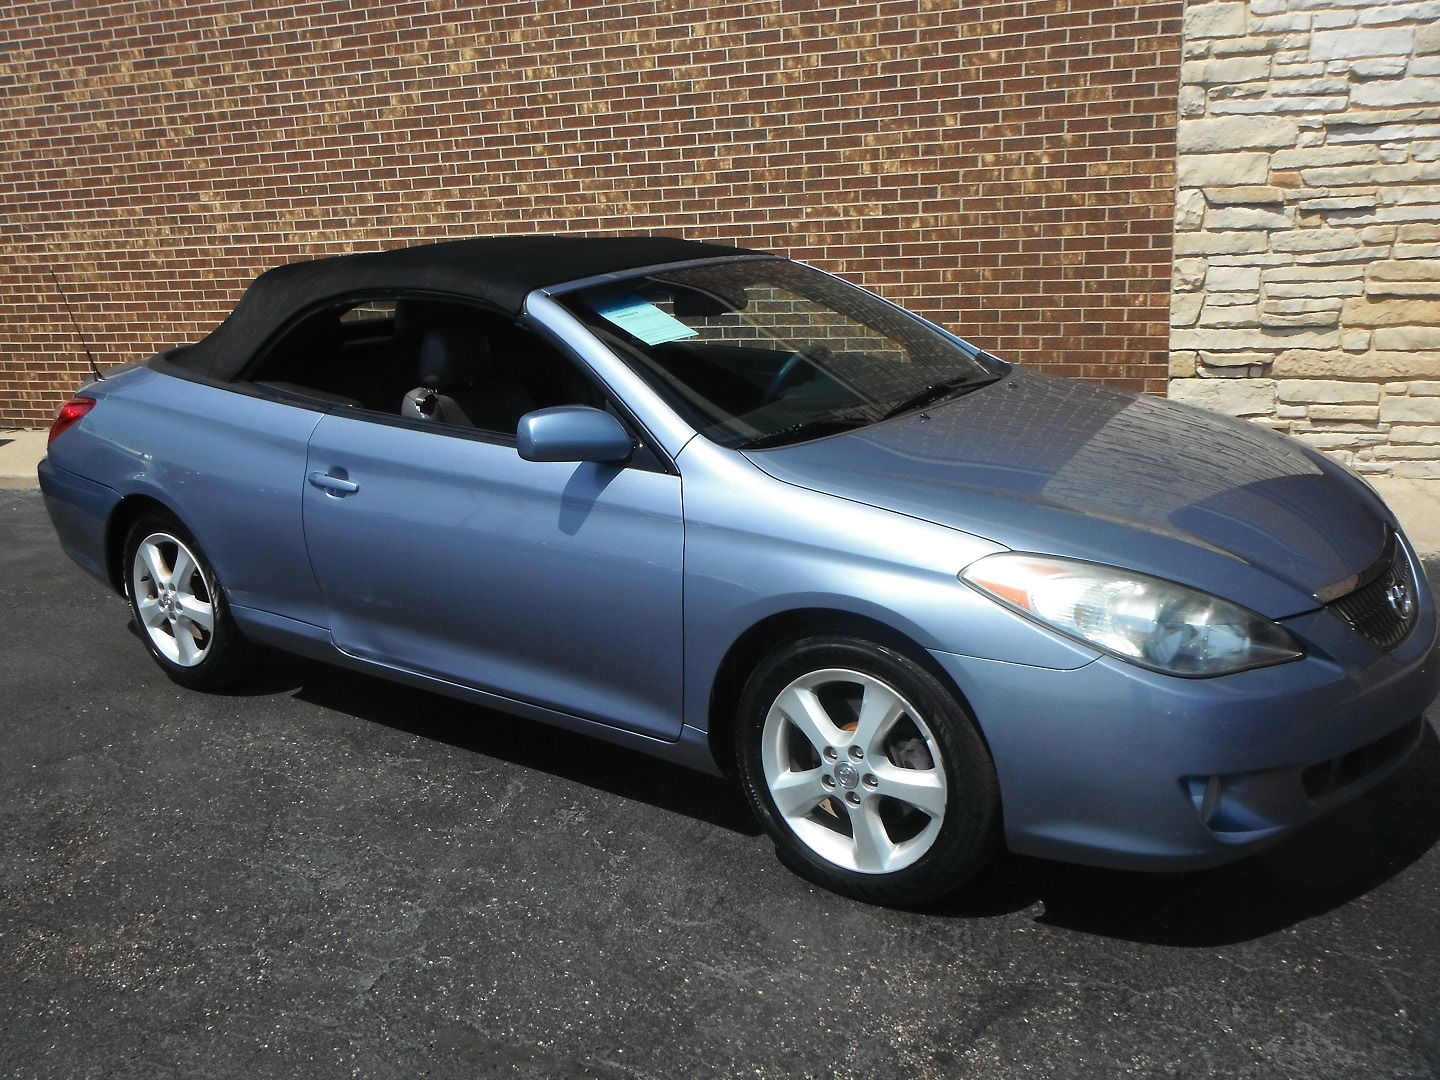 used 2006 toyota camry solara sle v6 for sale woodstock il. Black Bedroom Furniture Sets. Home Design Ideas